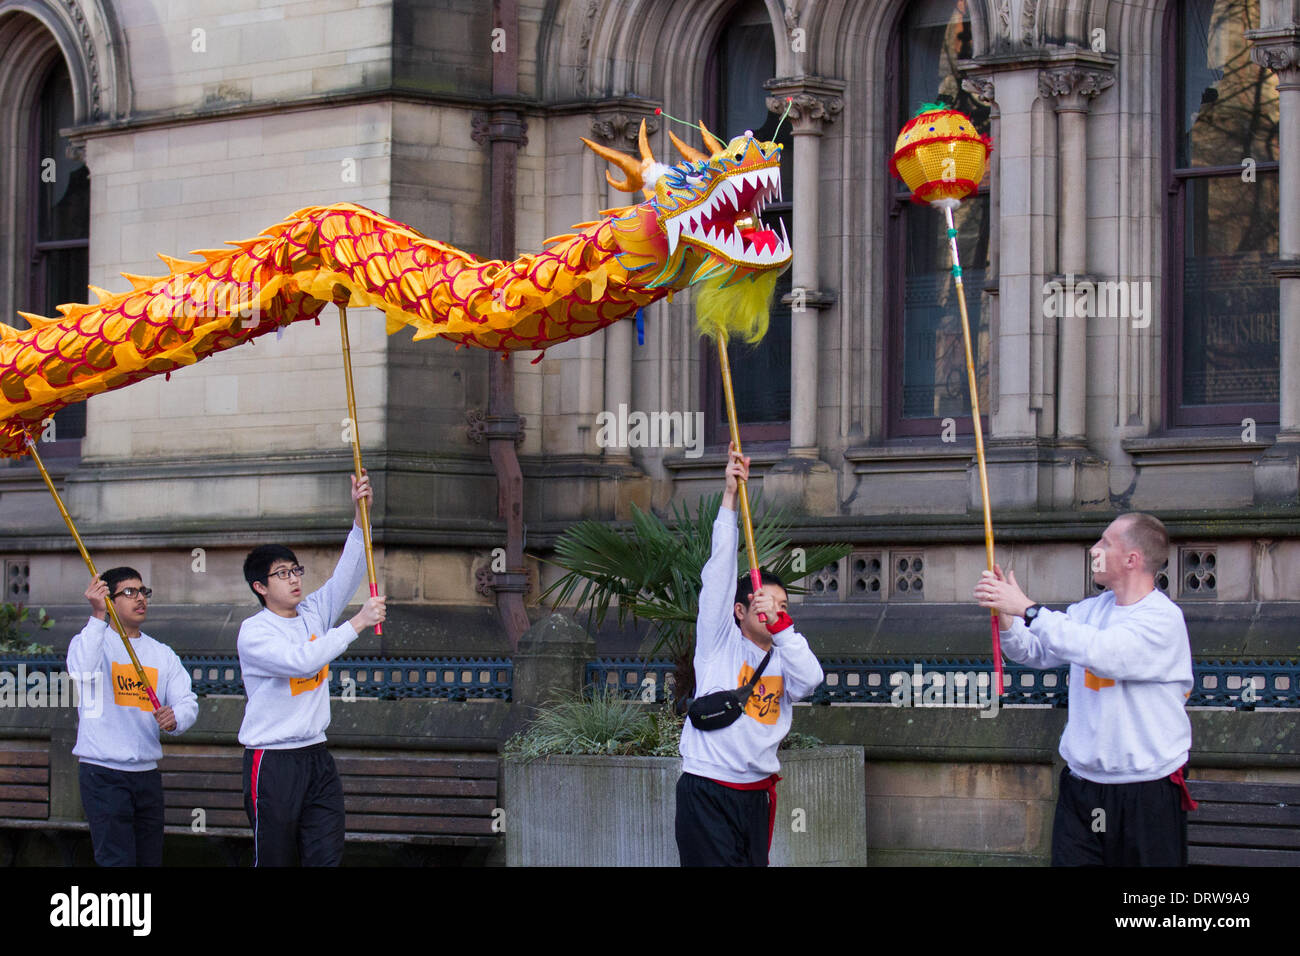 Manchester, Chinatown 2nd February, 2104.  High pole dragon dance at the Chinese New Year in Albert Square, Manchester the North's biggest Chinese New Year celebrations. Manchester's Chinatown is one of Europe's biggest tucked into a narrow grid of streets behind Piccadilly Gardens.  With a 175-foot golden paper dragon, a lion dance, martial arts demonstrations, the Dragon Parade, from the Town Hall to Chinatown,  is one of the highlights of Manchester's annual events calendar. Credit:  Mar Photographics/Alamy Live News. - Stock Image